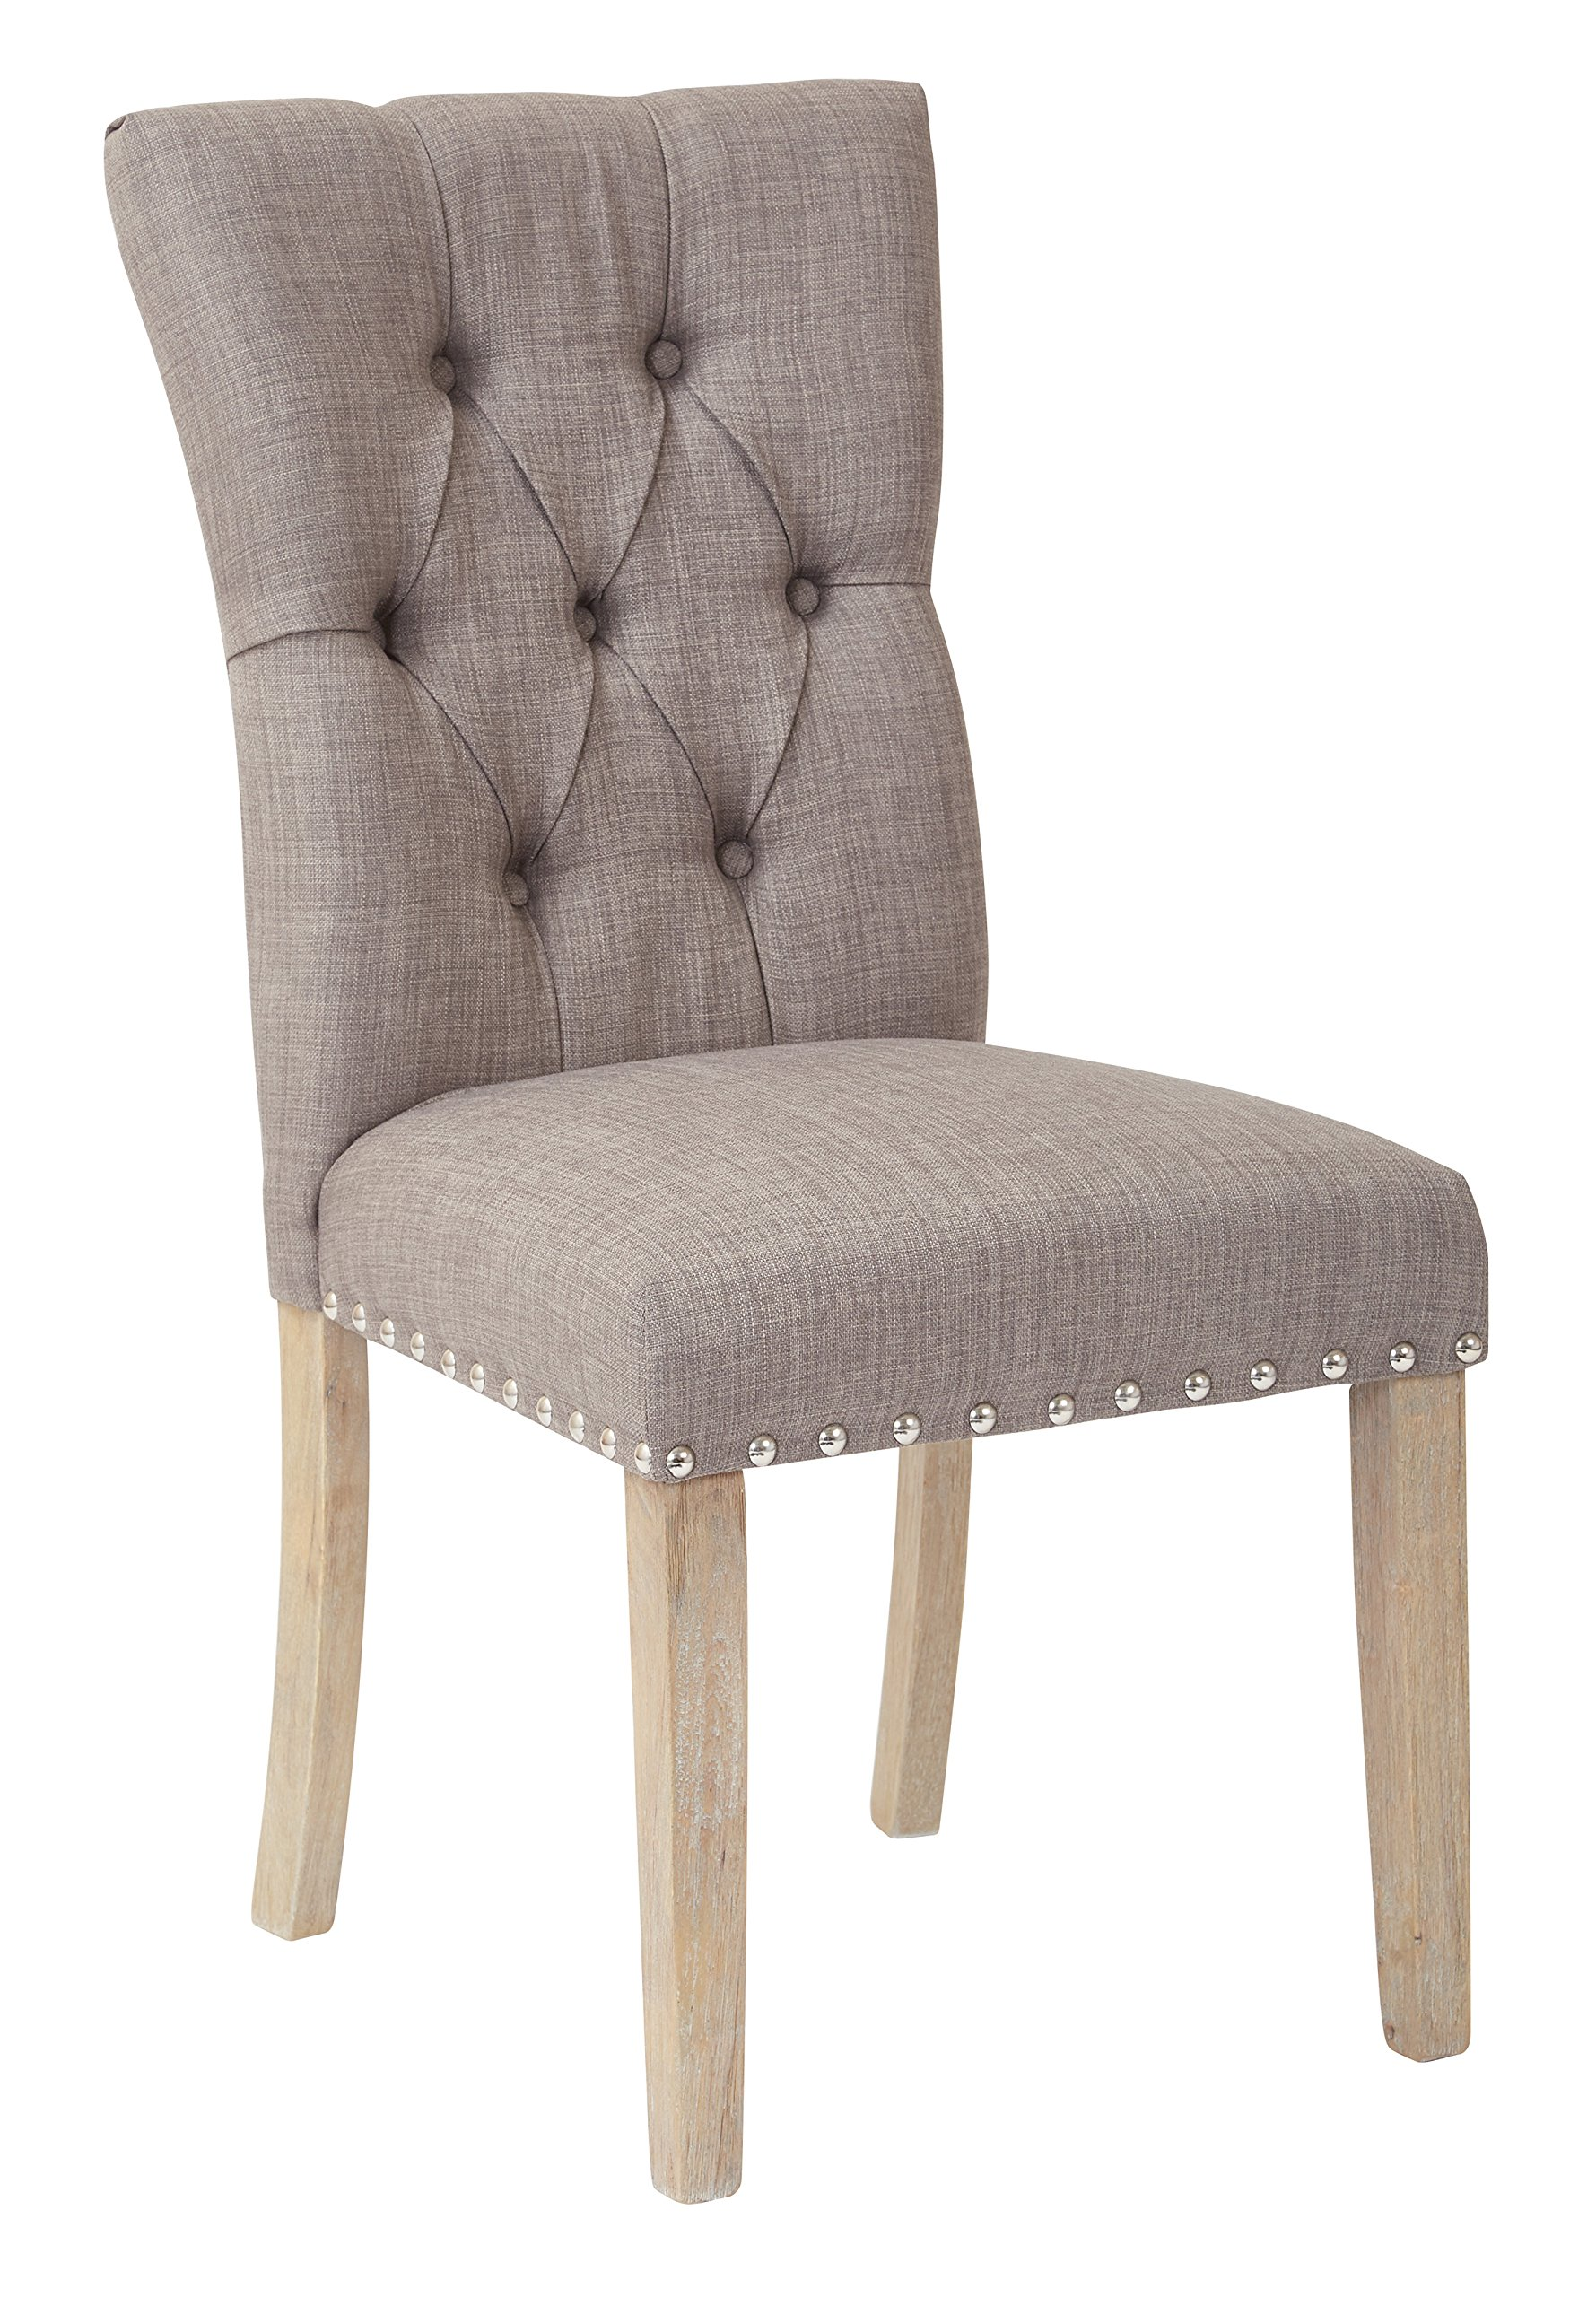 Inspired by Bassett Preston Fabric Seat and Tufted Back Dining Chair with Brushed Rustic Wood Legs and Nailhead Accents, Marlow Dolphin